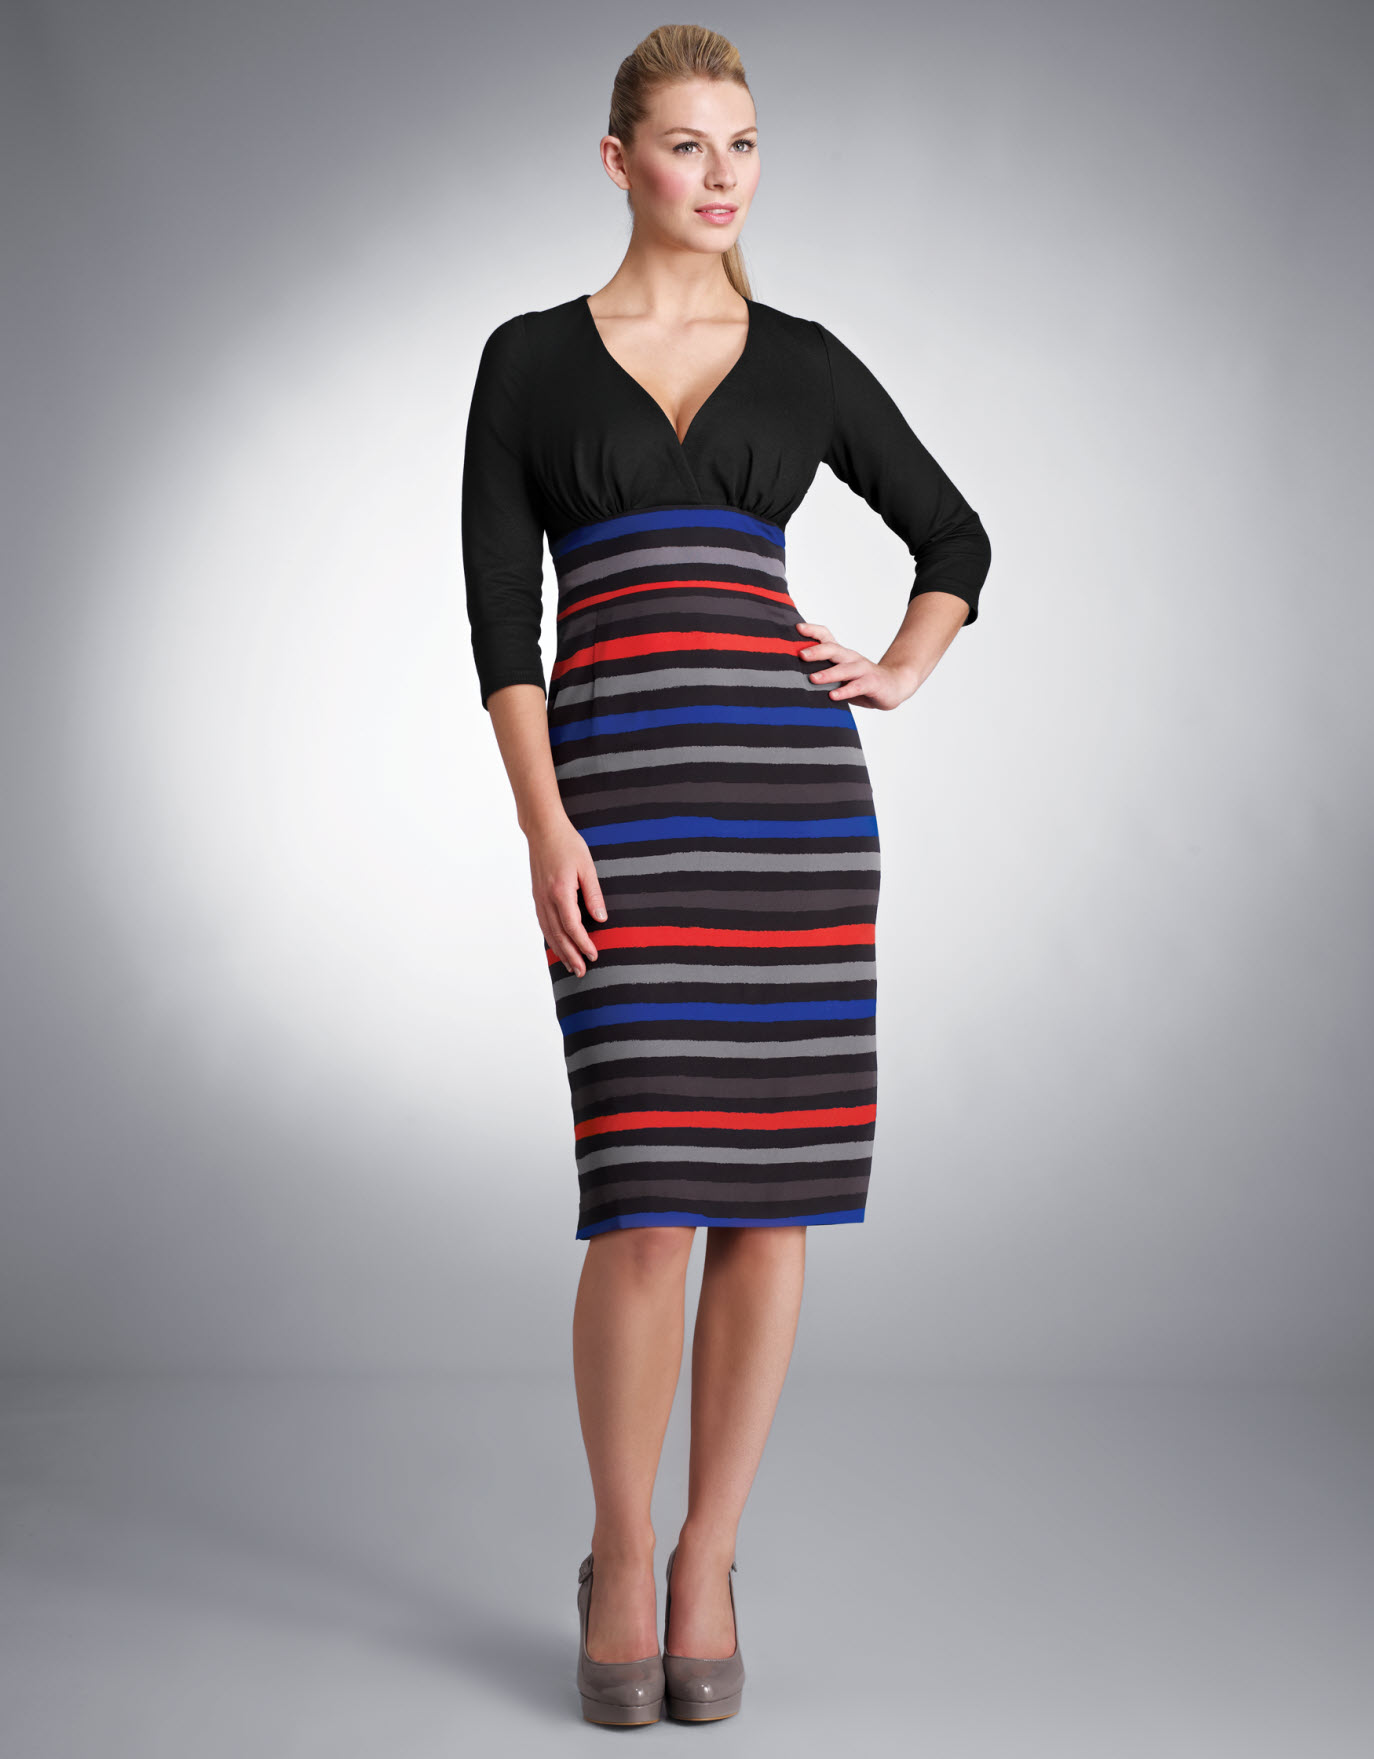 Striped Skirt Dress.  Available in sizes 08-18 (UK) Curvy/Really Curvy and Really Curvy/Super Curvy.  £69.00 (about $110.50 USD)